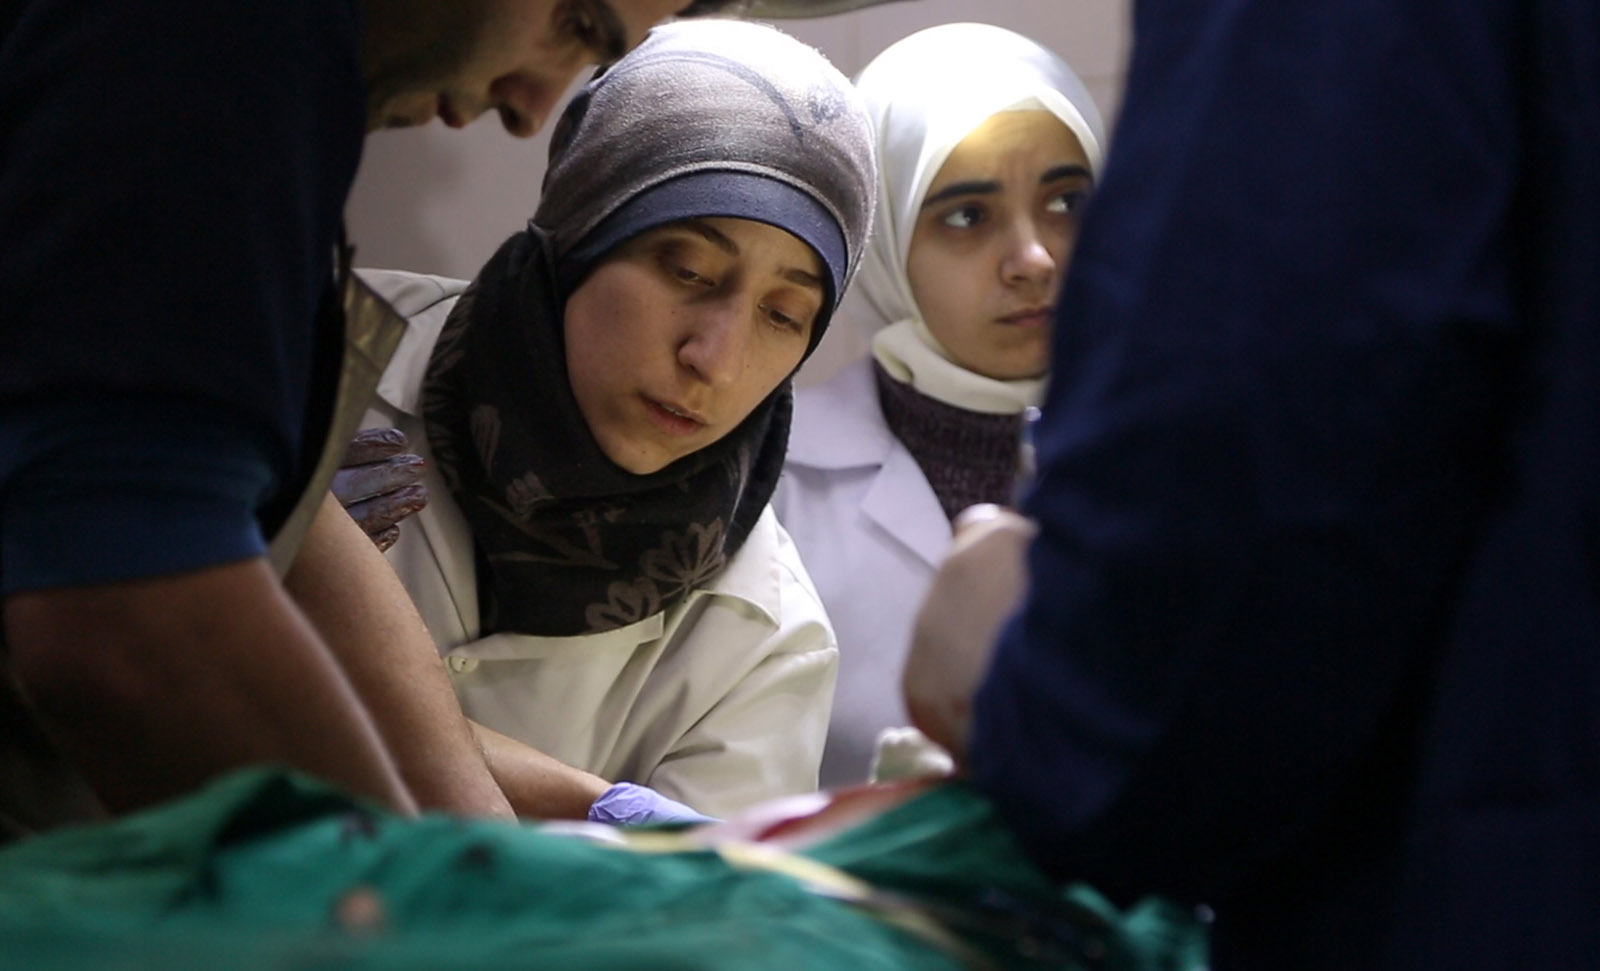 Syrian doctors in the OR